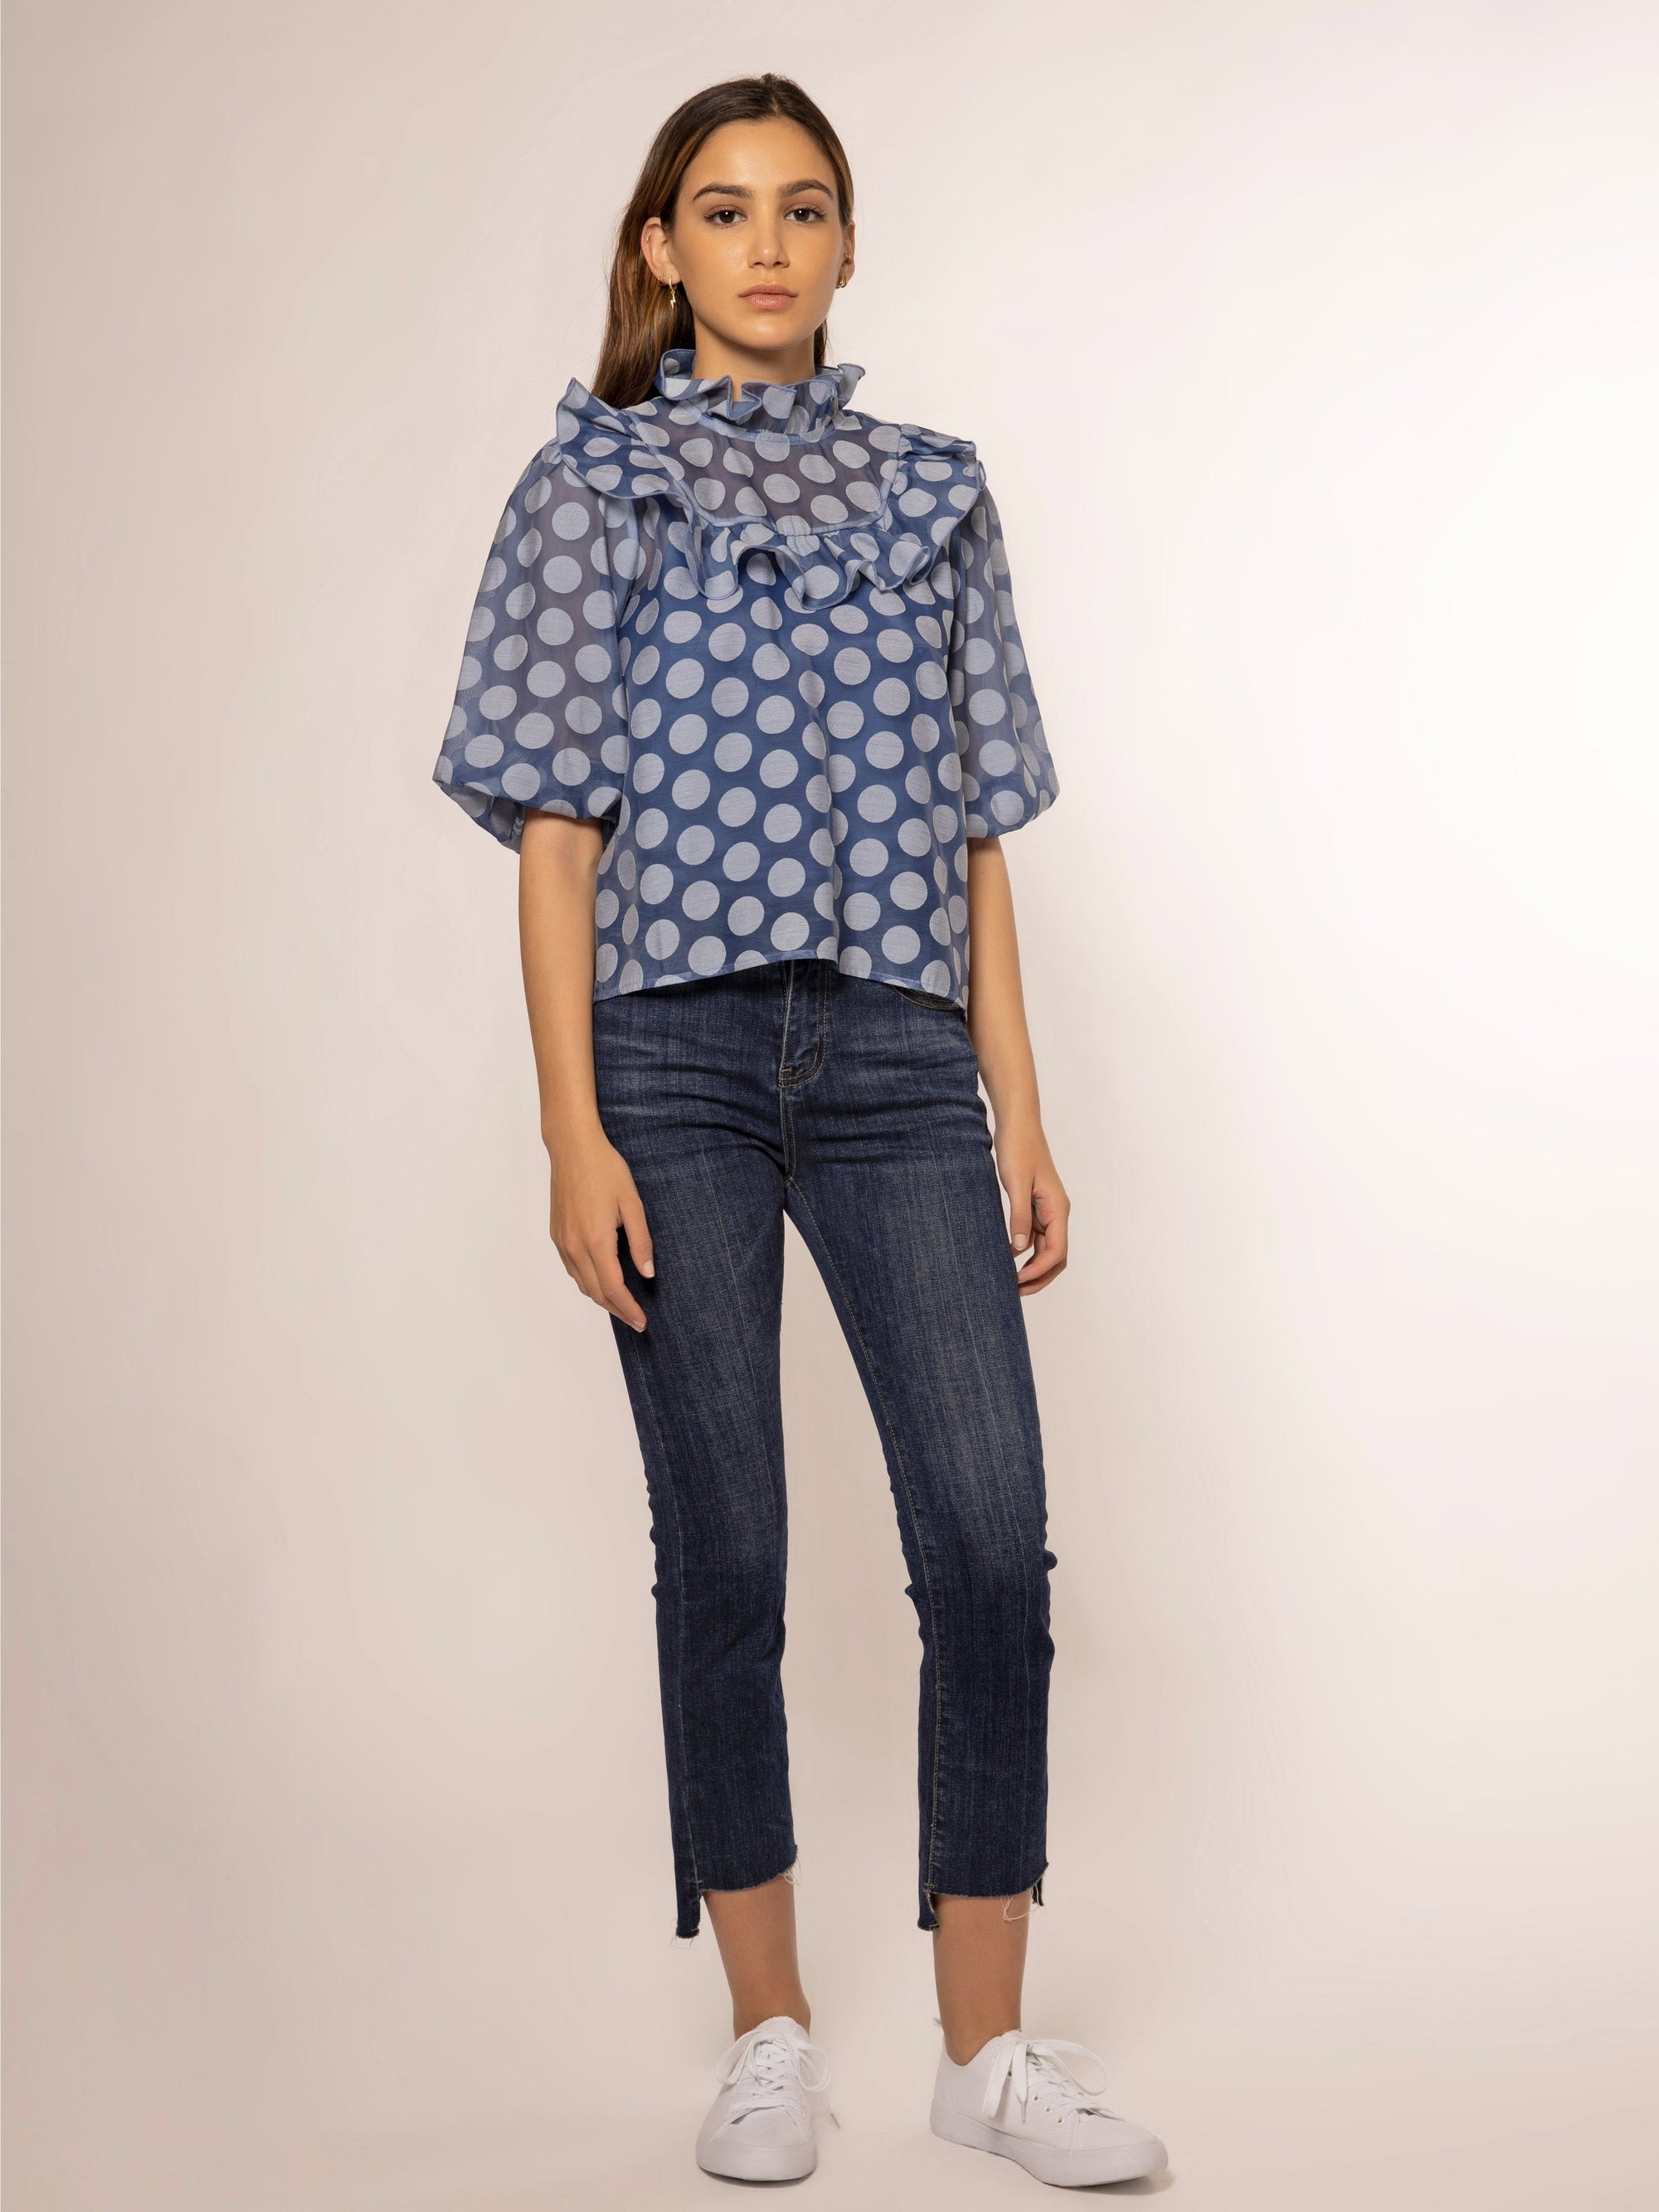 Neck Flare Detail Dot Pattern See-Through Top TOP Gracia Fashion BLUE S